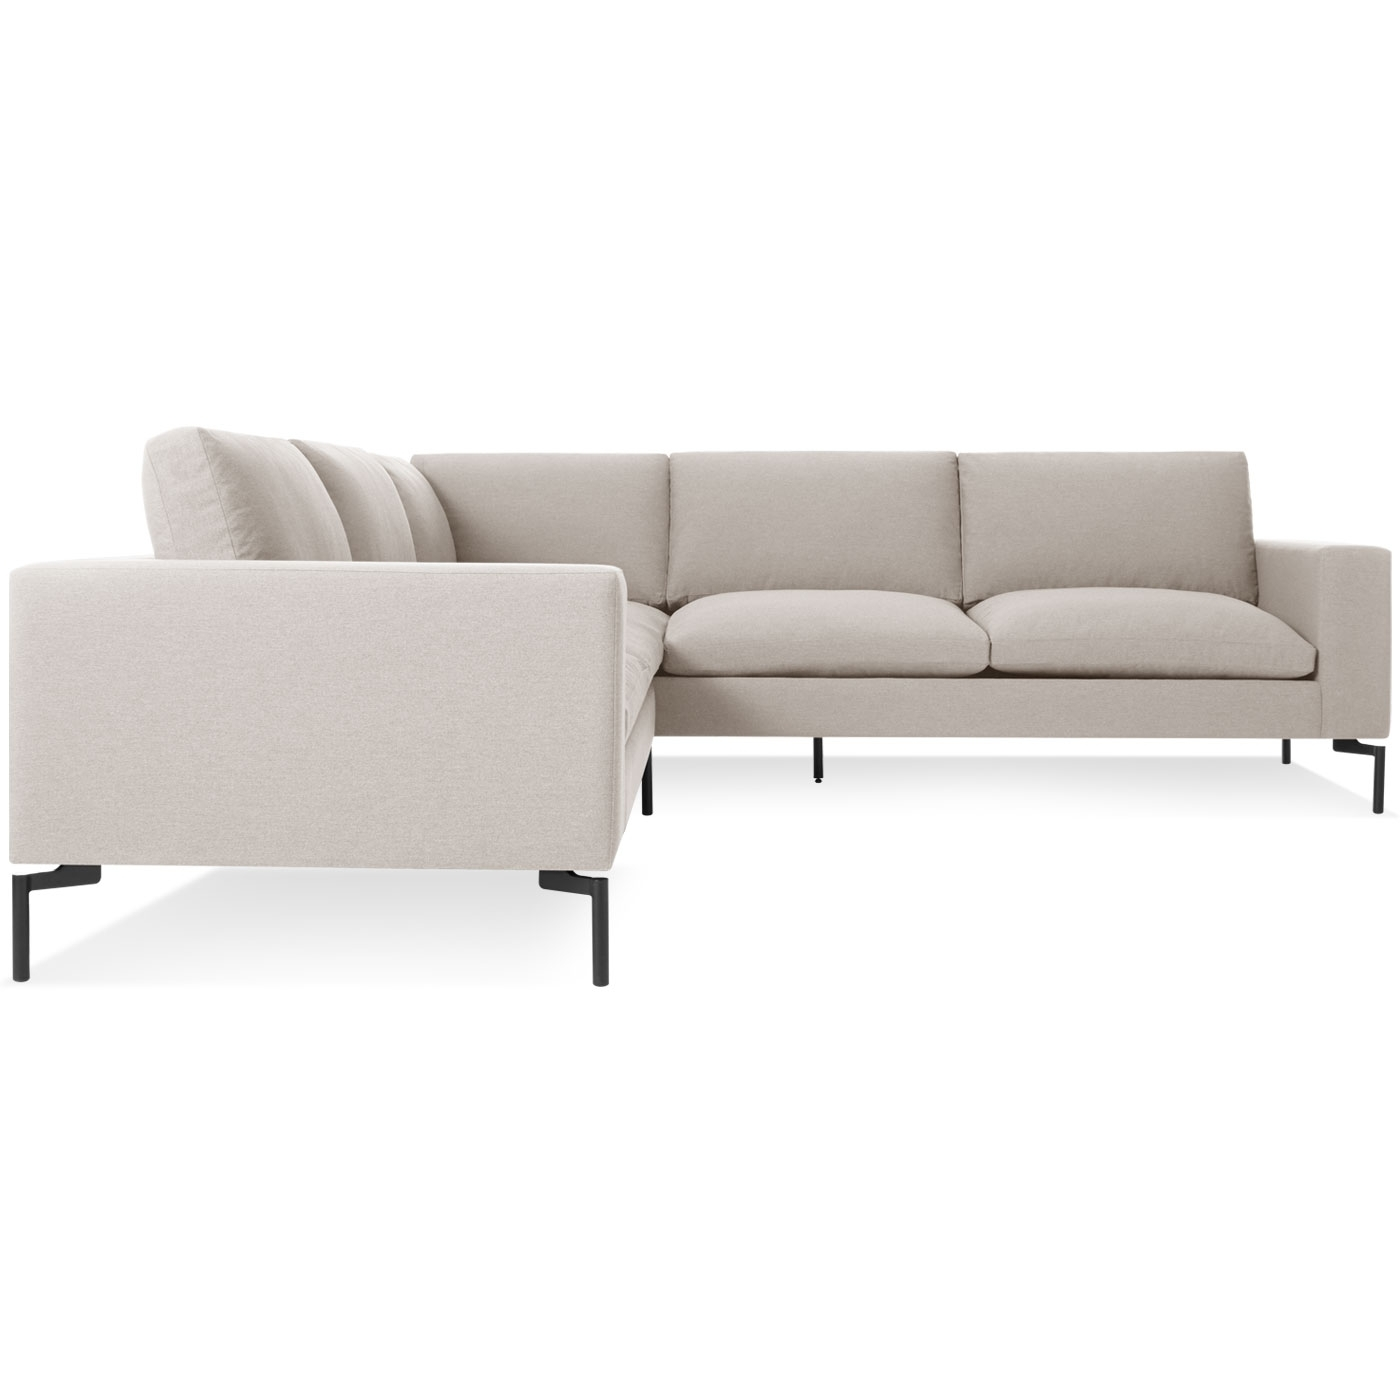 Blu Dot Throughout Modern Sectional Sofas For Small Spaces (View 3 of 20)